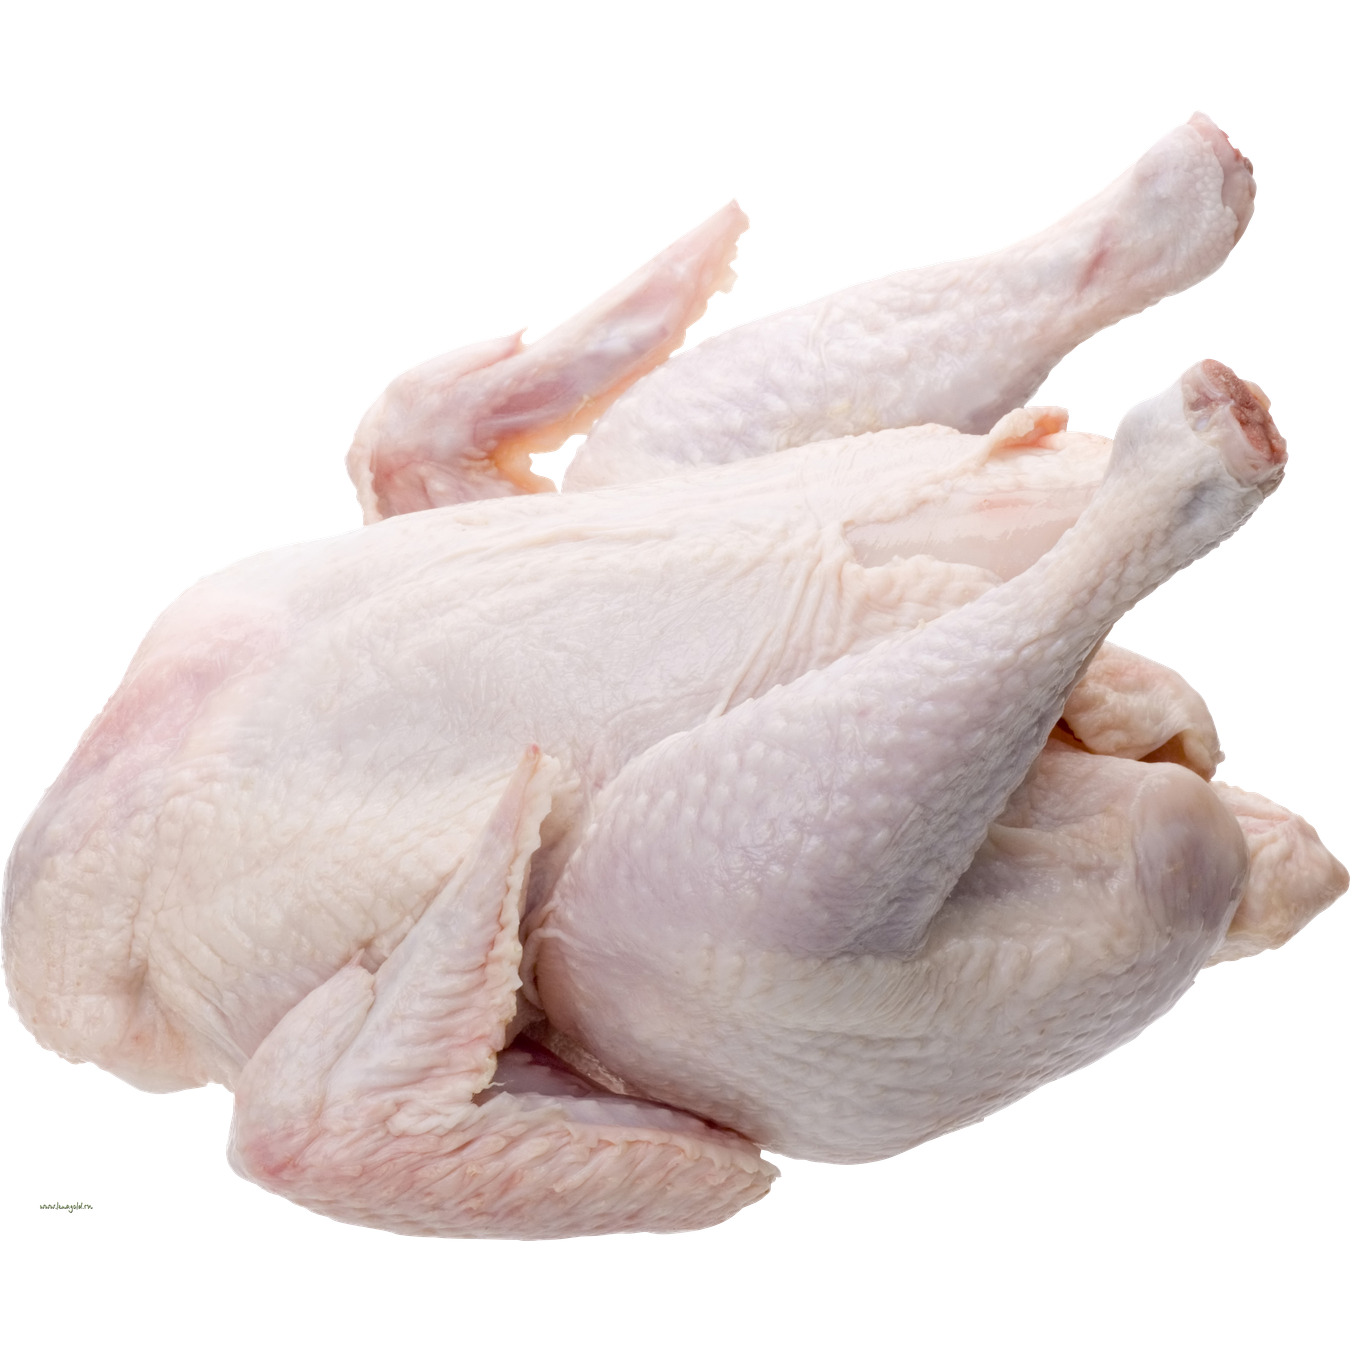 Poultry Fresh  Meat, Fish, Poultry  Fresh Meat -9480